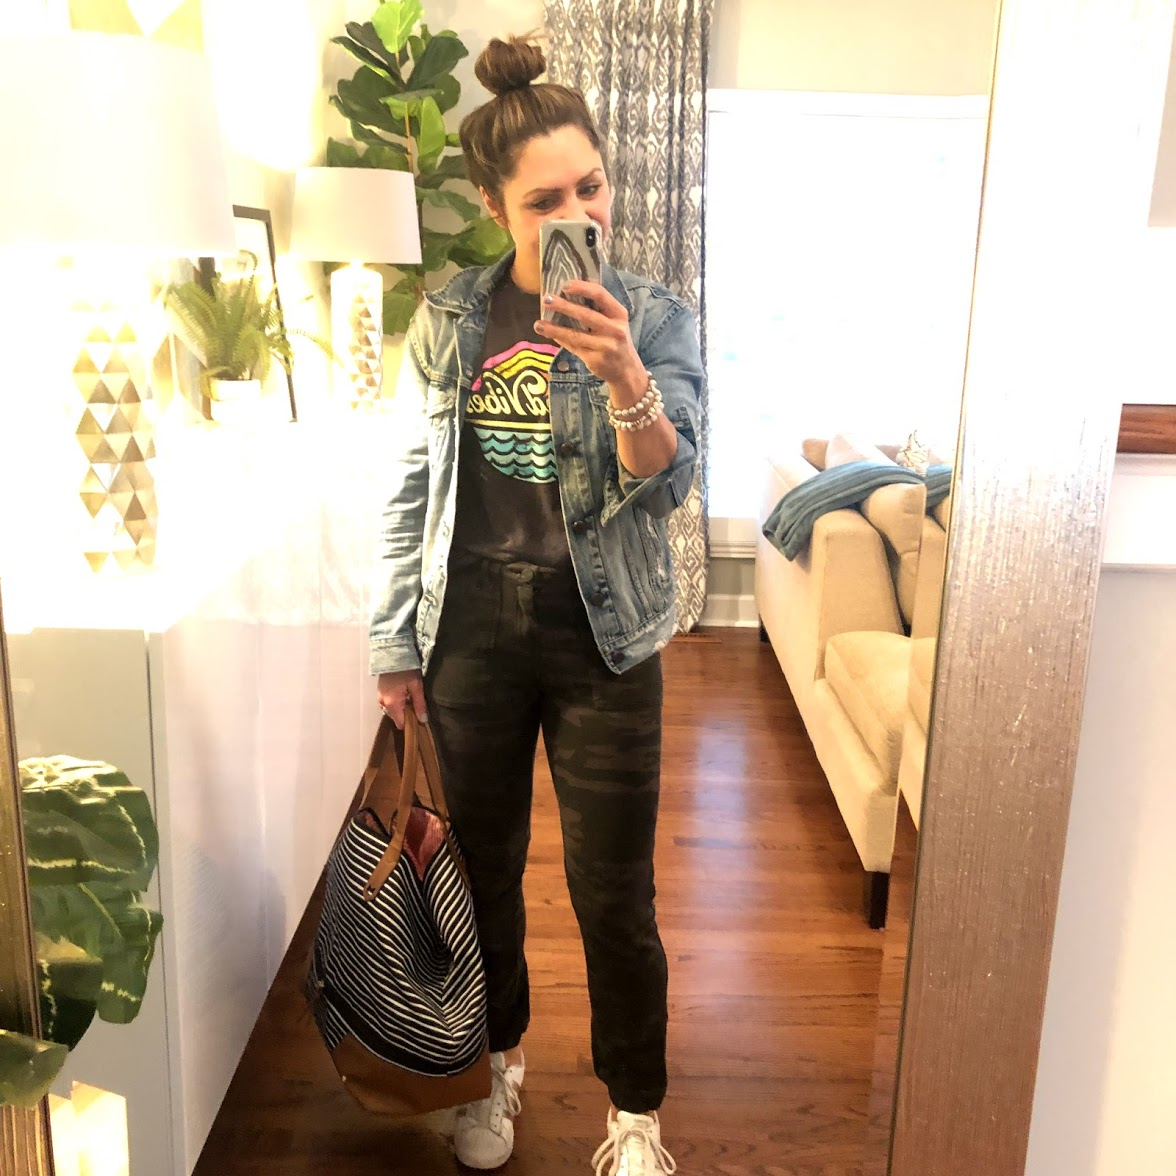 Camo joggers (they are like sweatpants!), Adidas sneakers, denim jacket, graphic tee.